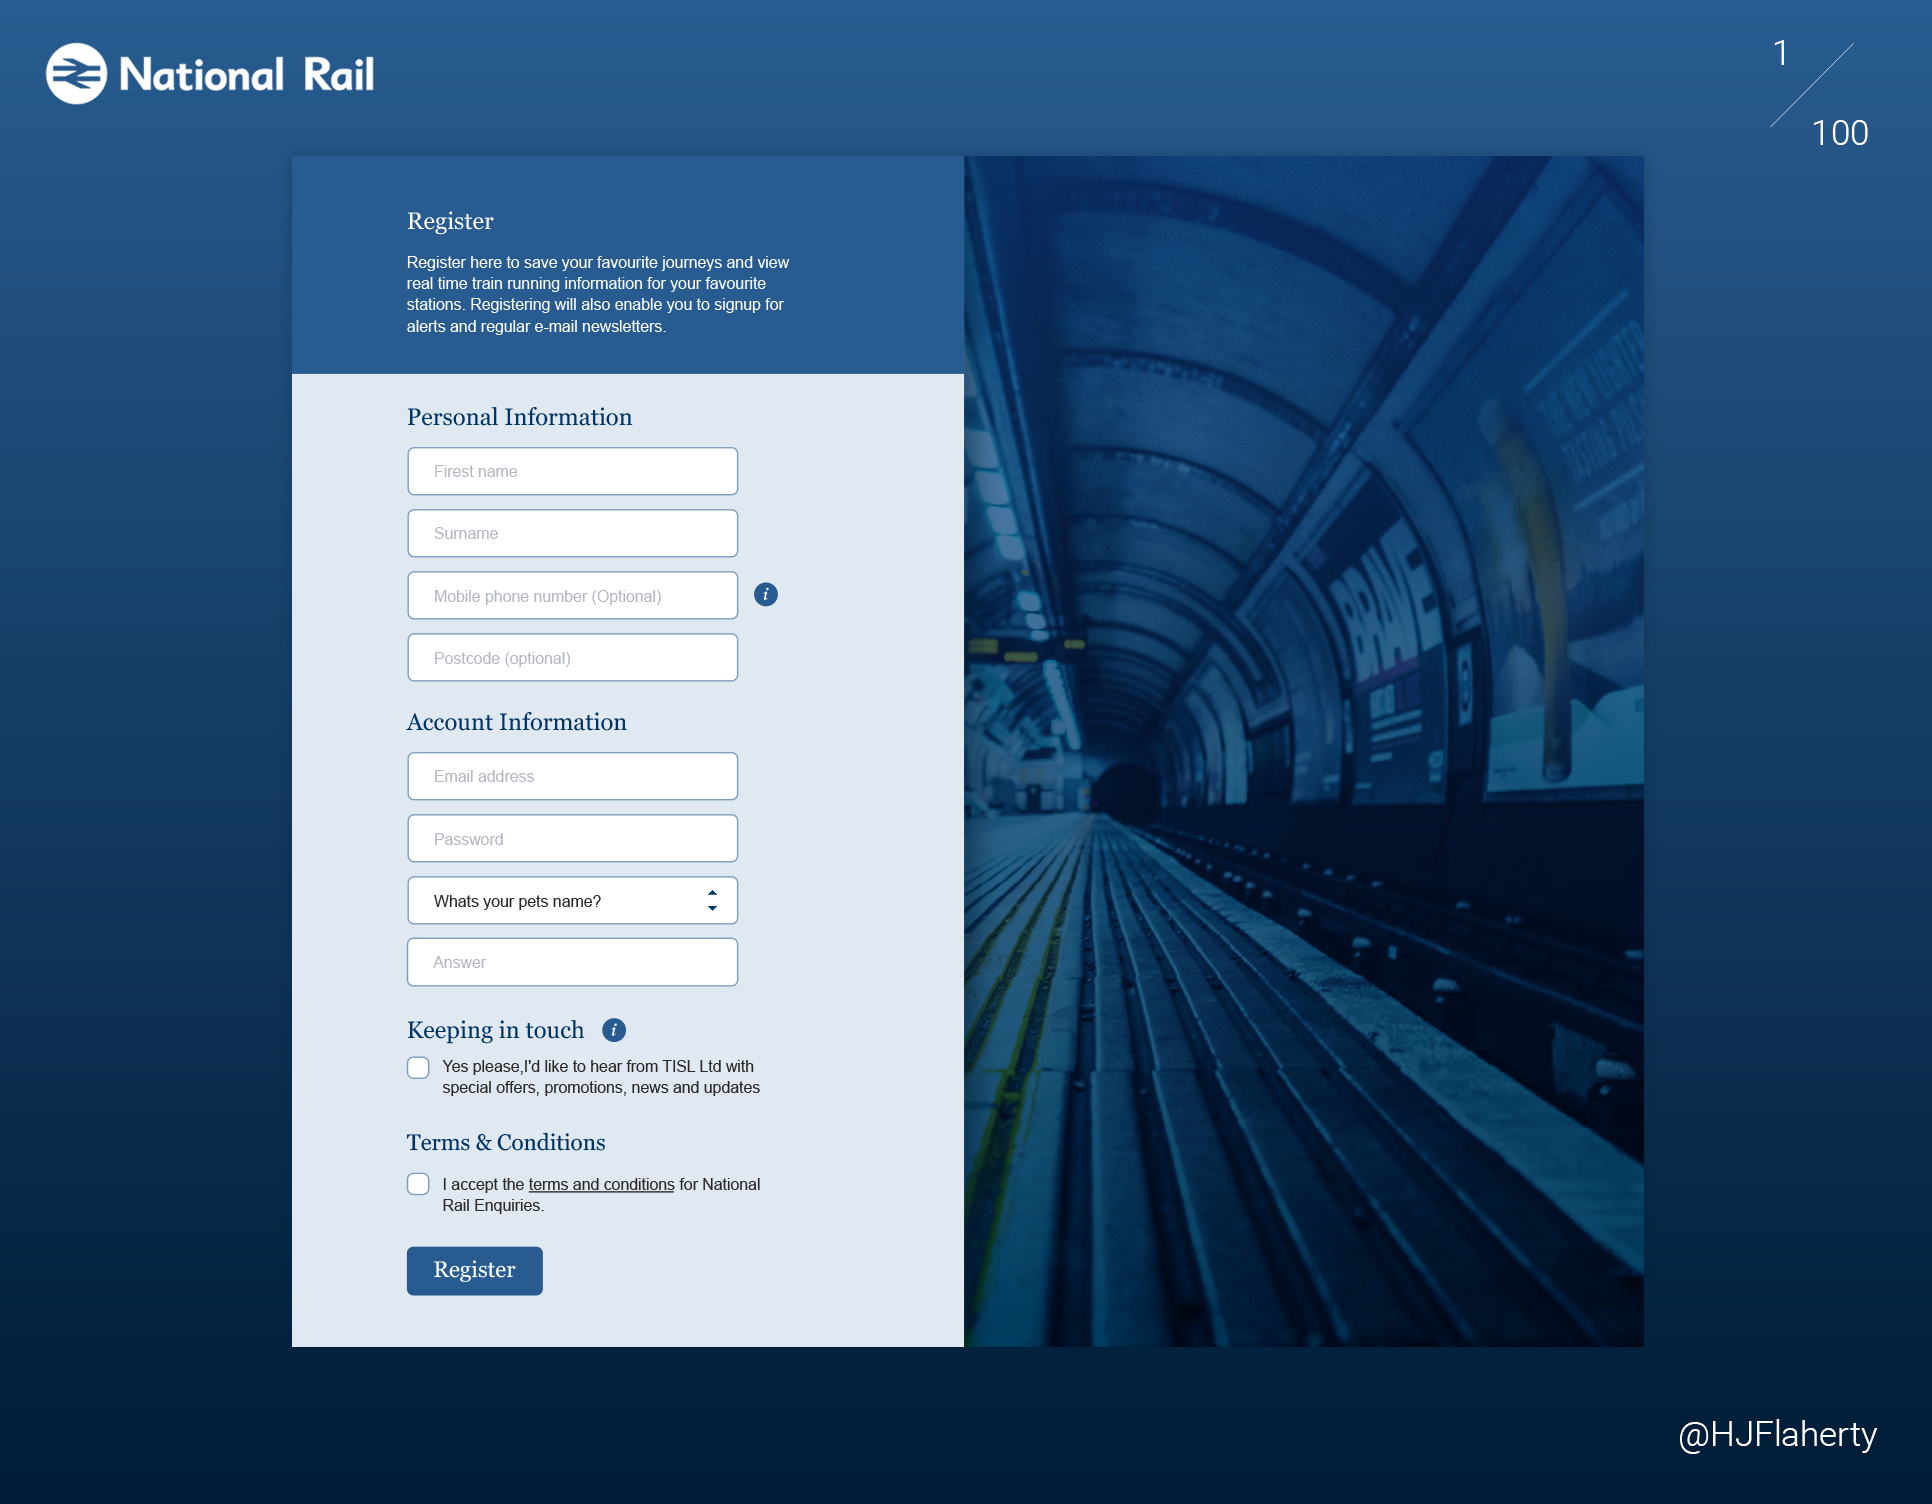 UI Daily Challenge 1 - Signup Page - The first challenge was to Design a sign up page, modal, form or app screen.I had chosen to start with nationalrail.co.uk's signup page, and condense already existing form fields to reduce time spent on creating an account.